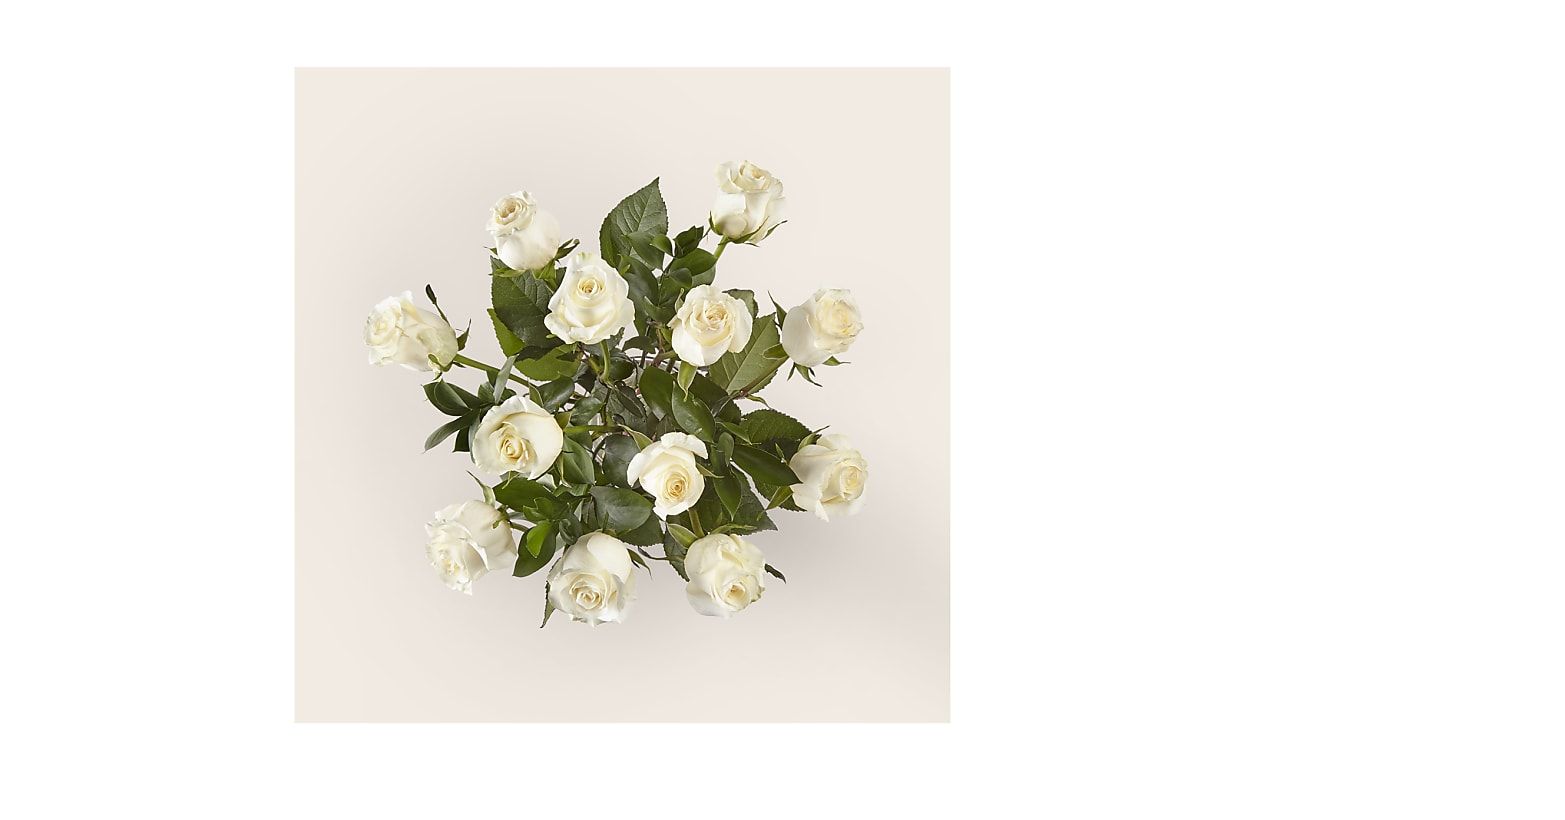 Moonlight White Rose Bouquet - Image 2 Of 2